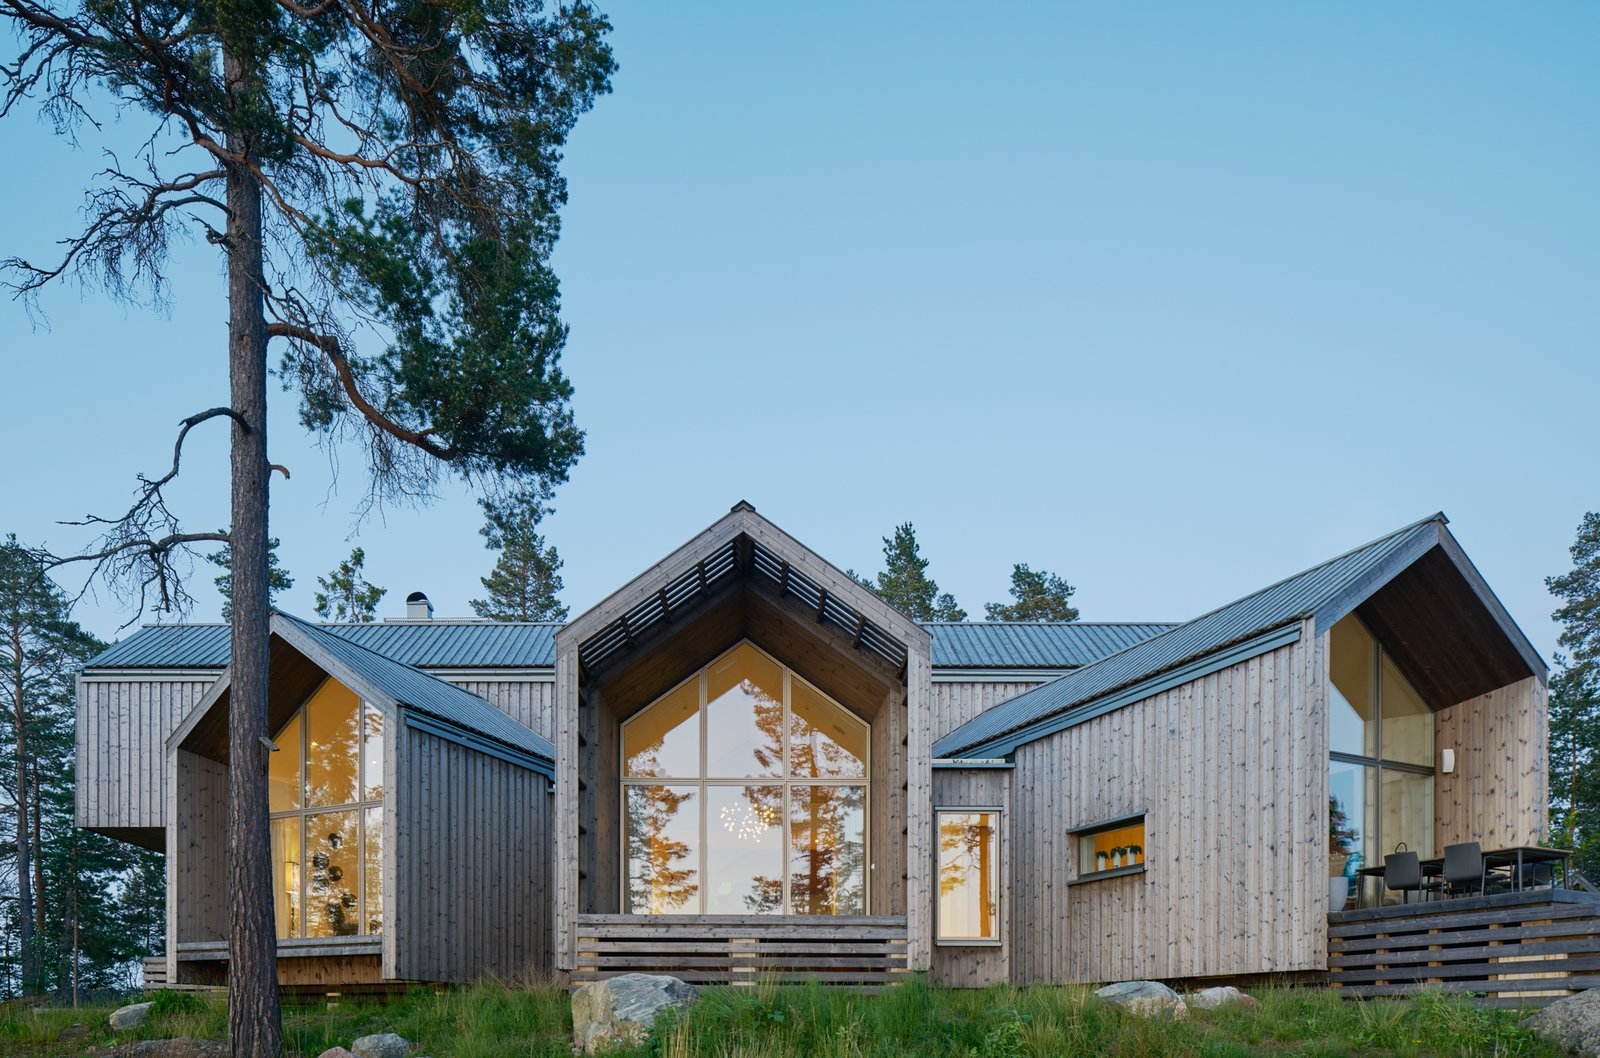 Exterior, House Building Type, Metal Roof Material, Wood Siding Material, Glass Siding Material, Gable RoofLine, and Cabin Building Type  Best Photos from A Swedish Family's Dreamy Villa Fans Out For Lakeside Views